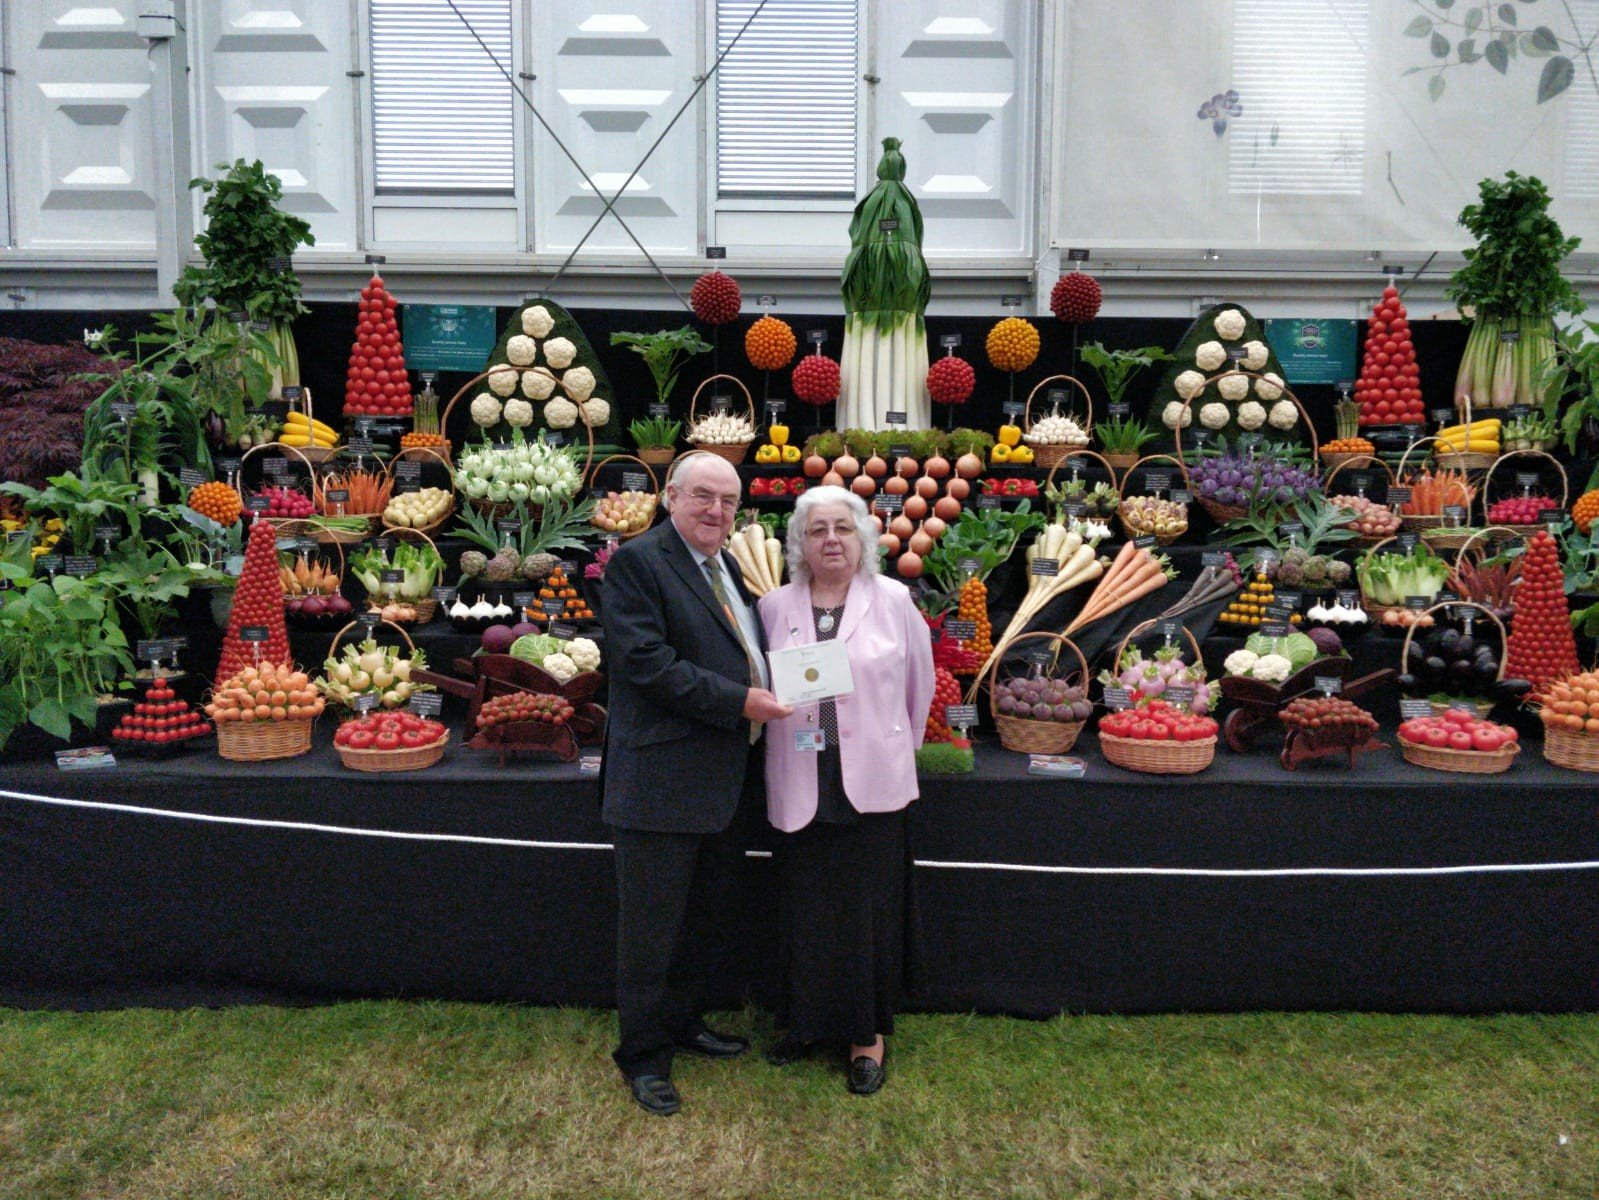 Medwyn and Gwenda Williams pose in front of their award-winning display at the 2019 Chelsea Flower Show